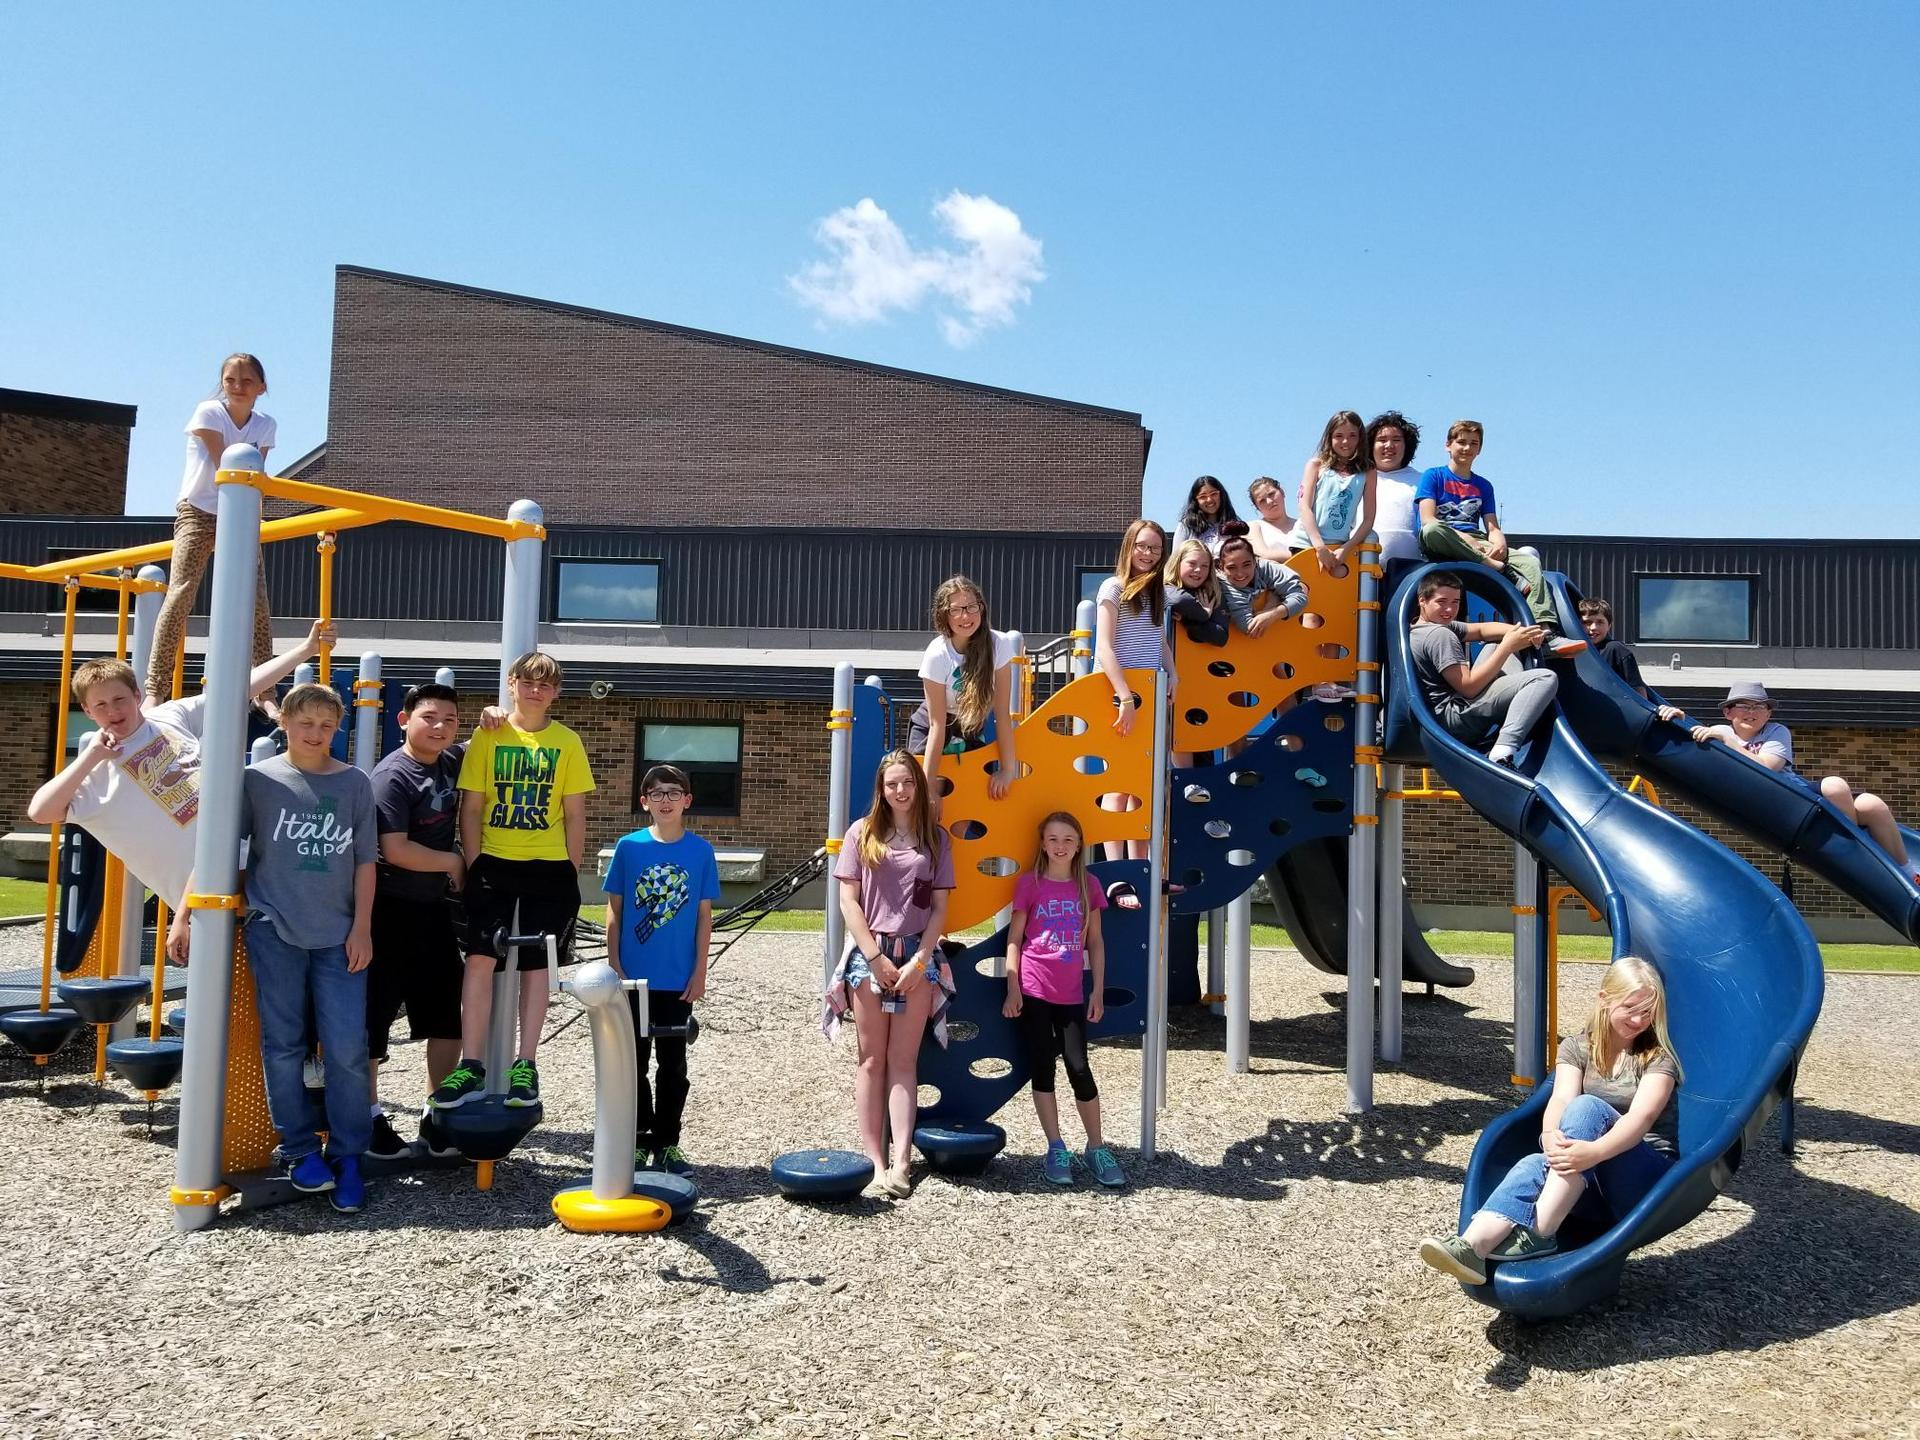 students on playstructure